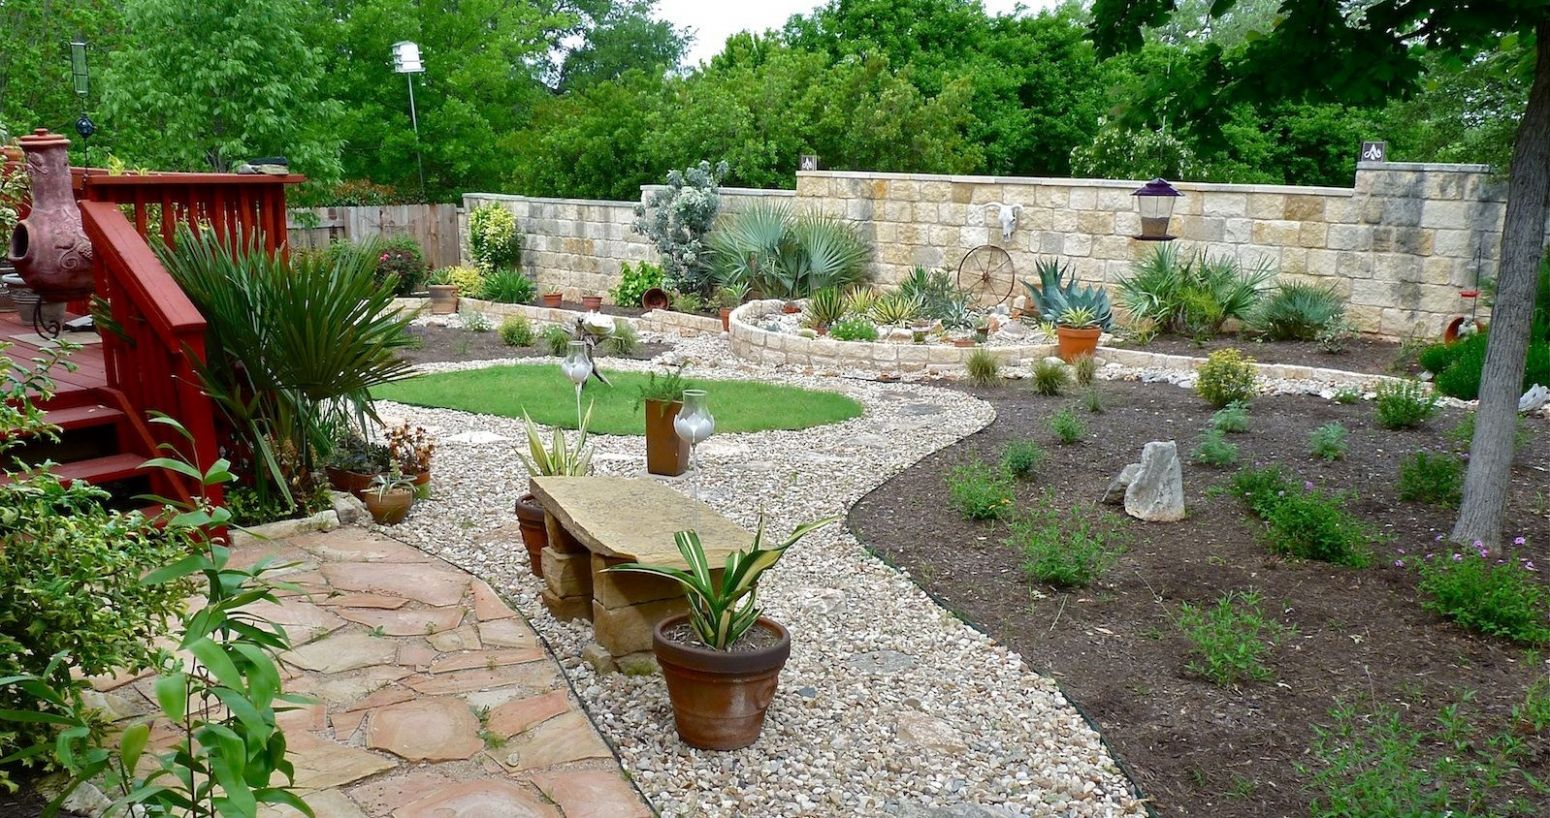 REFLECTIONS ON A XERISCAPE (With images) | Xeriscape front yard ..